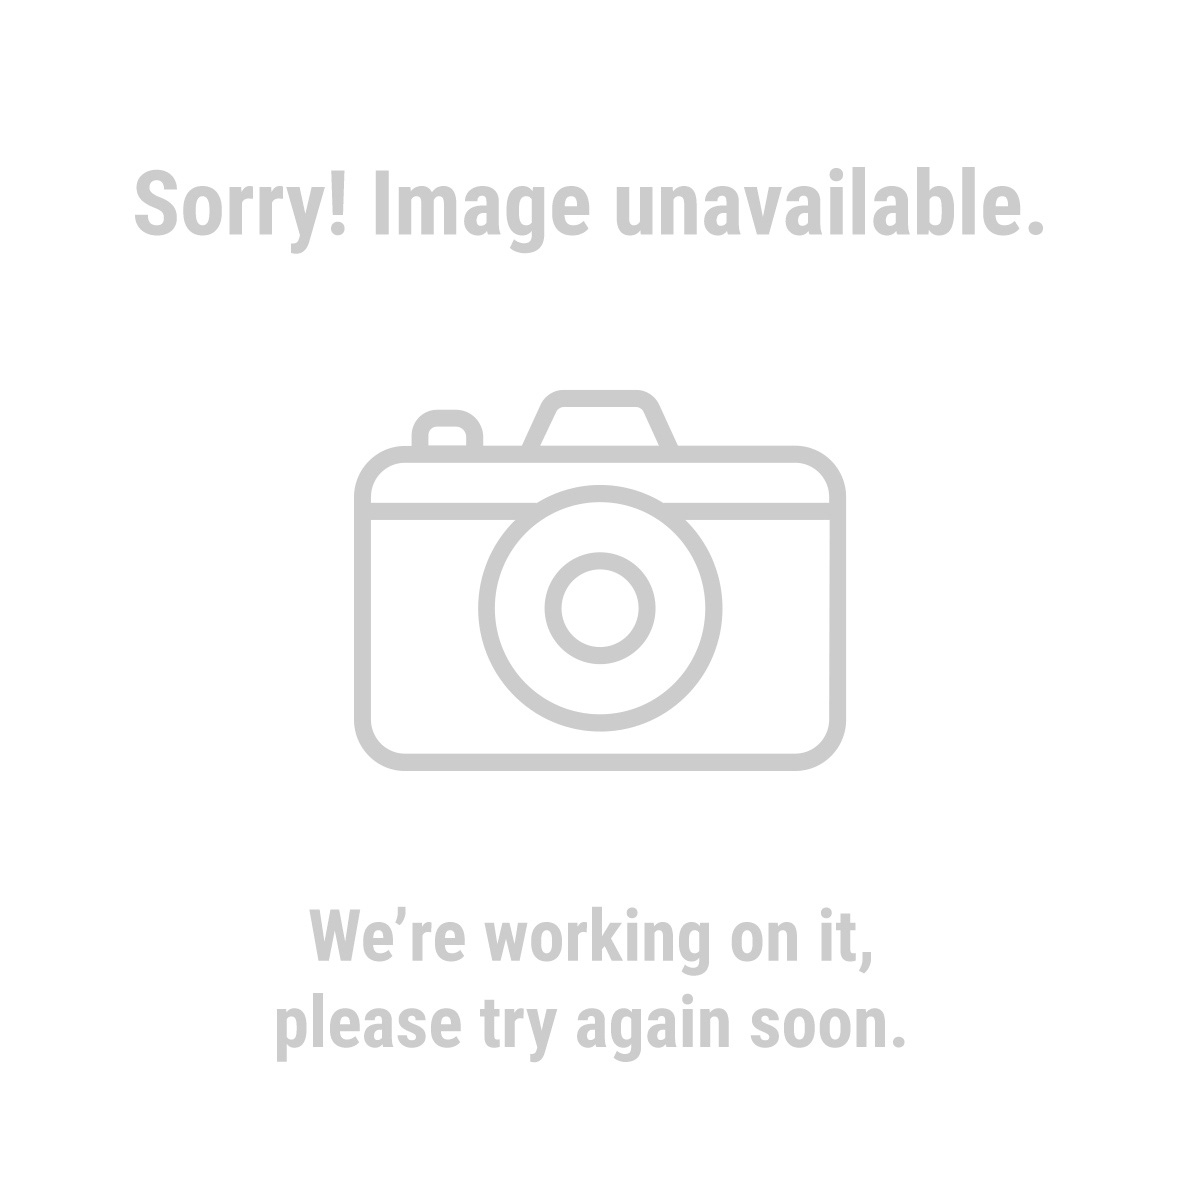 Bunker Hill Security 47546 Weatherproof Security Camera with Night Vision